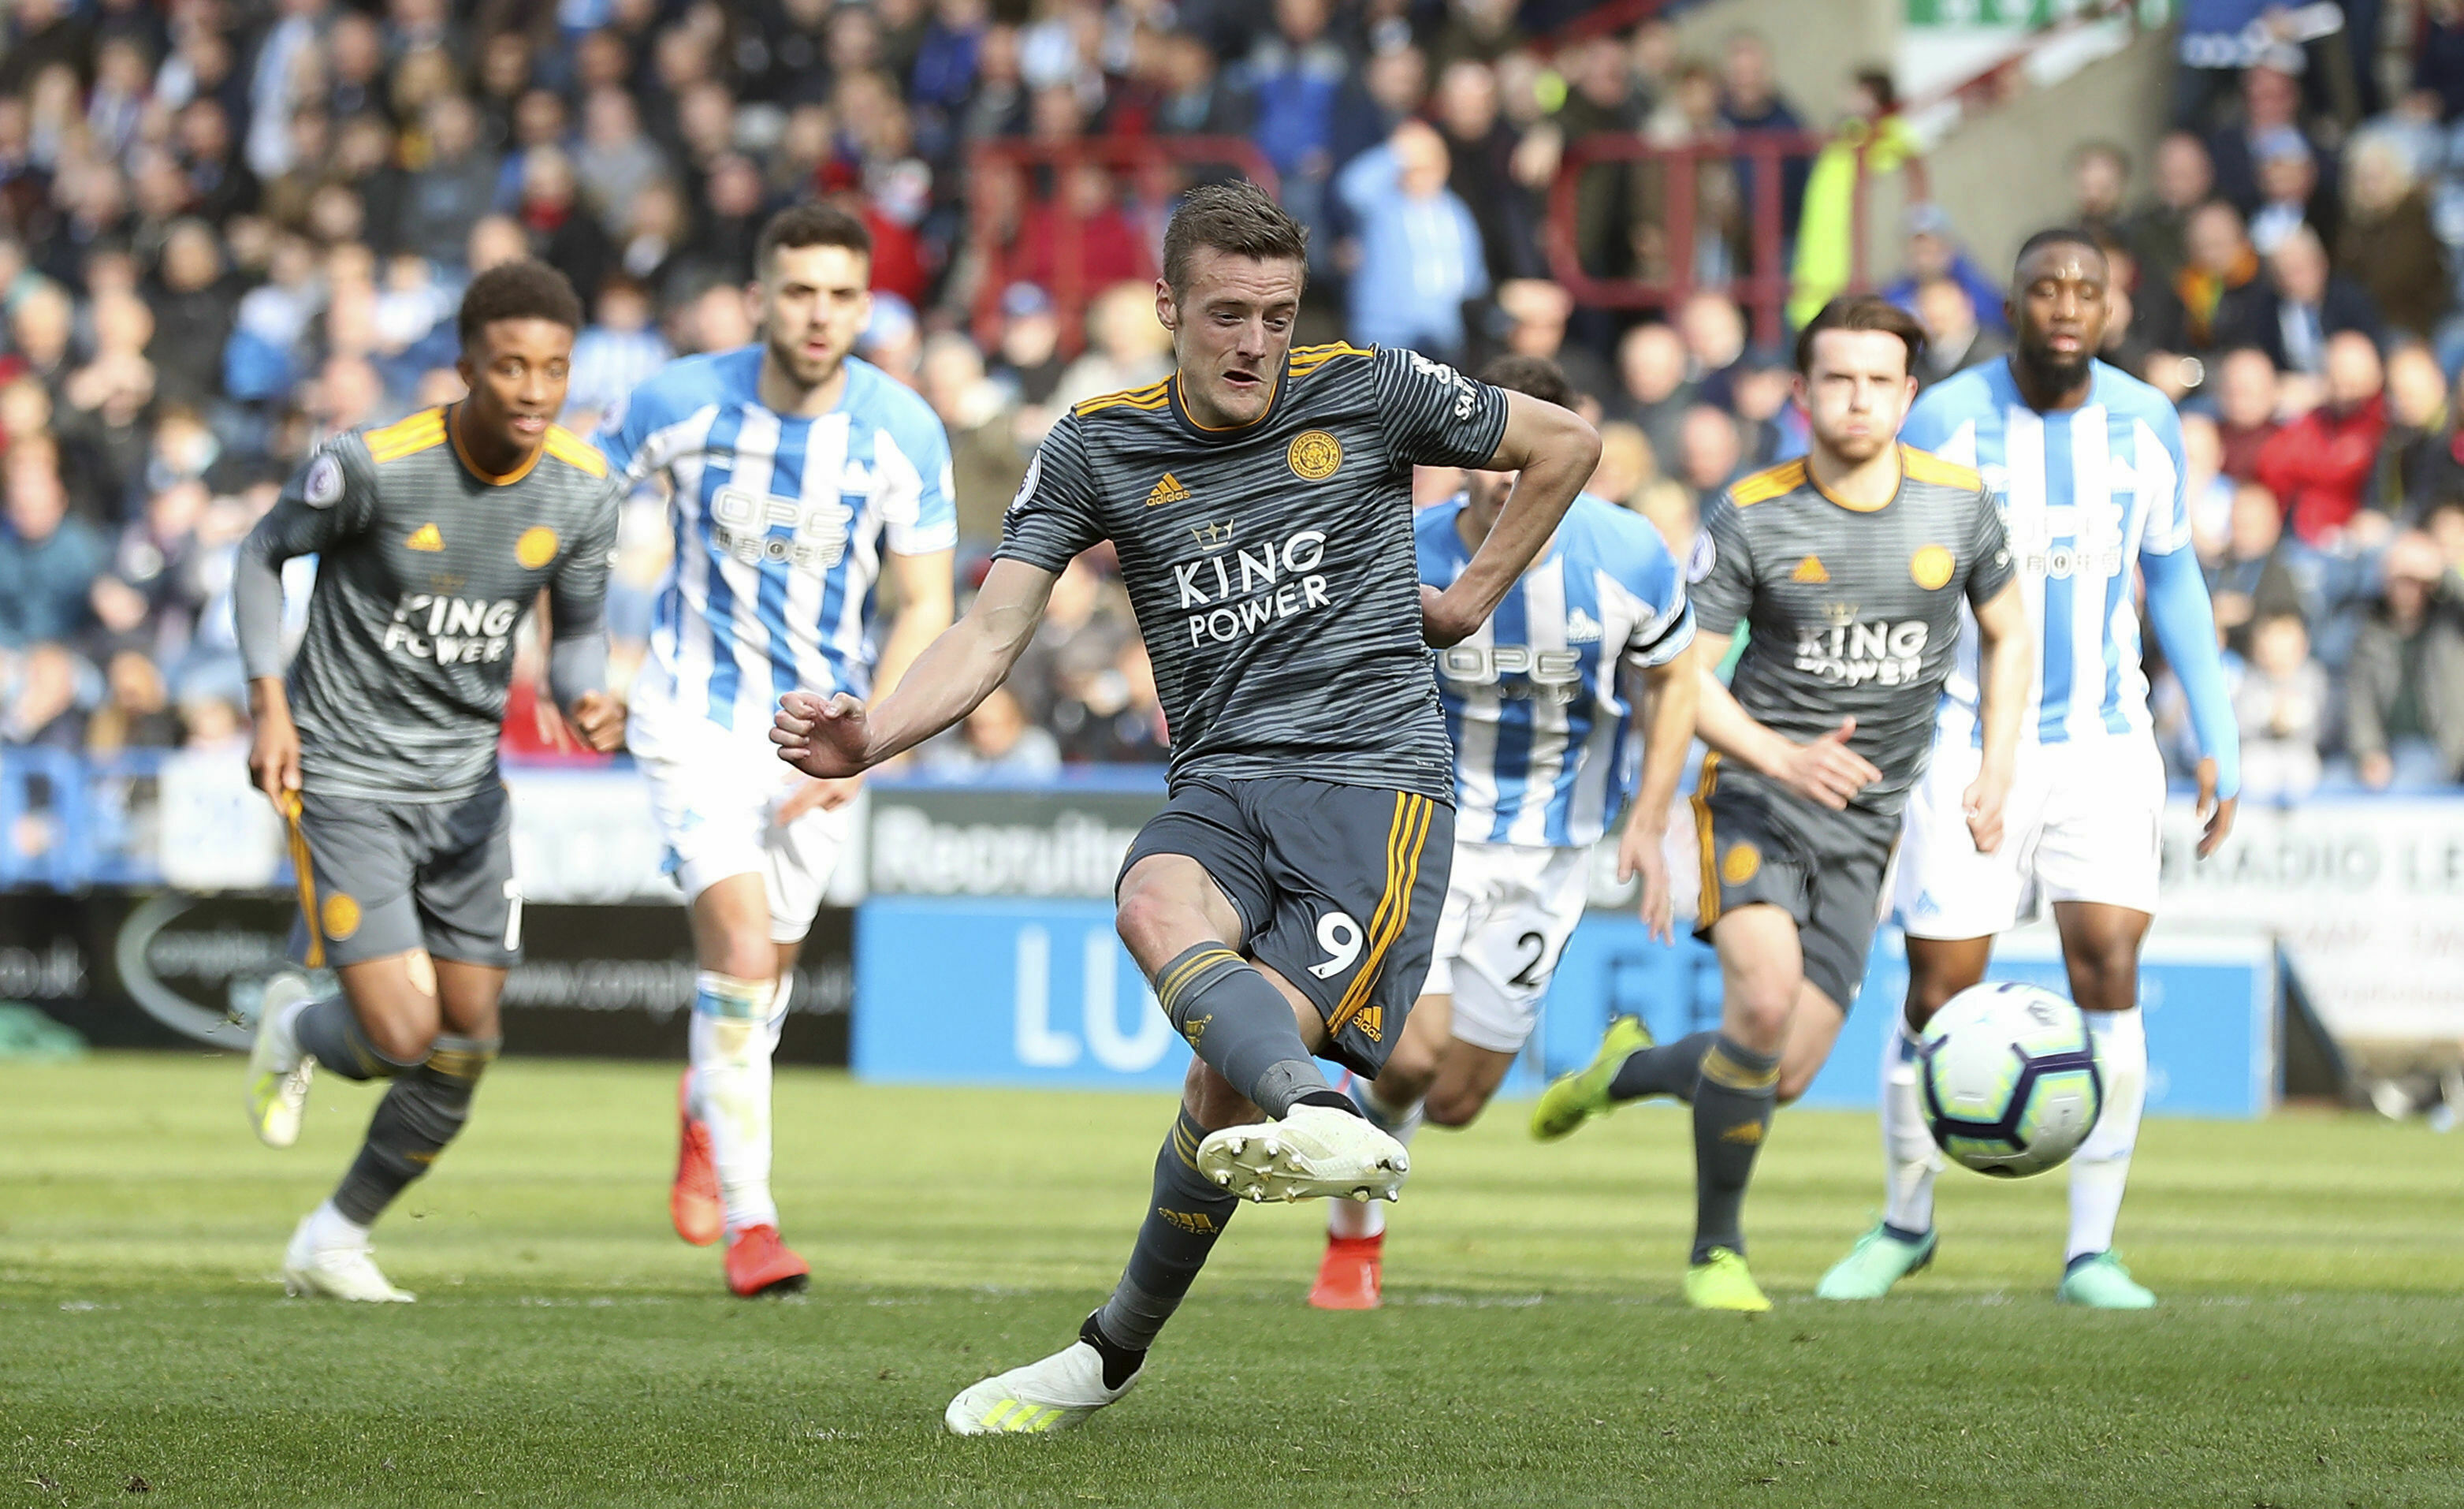 Vardy helps Leicester to 4-1 victory over Huddersfield